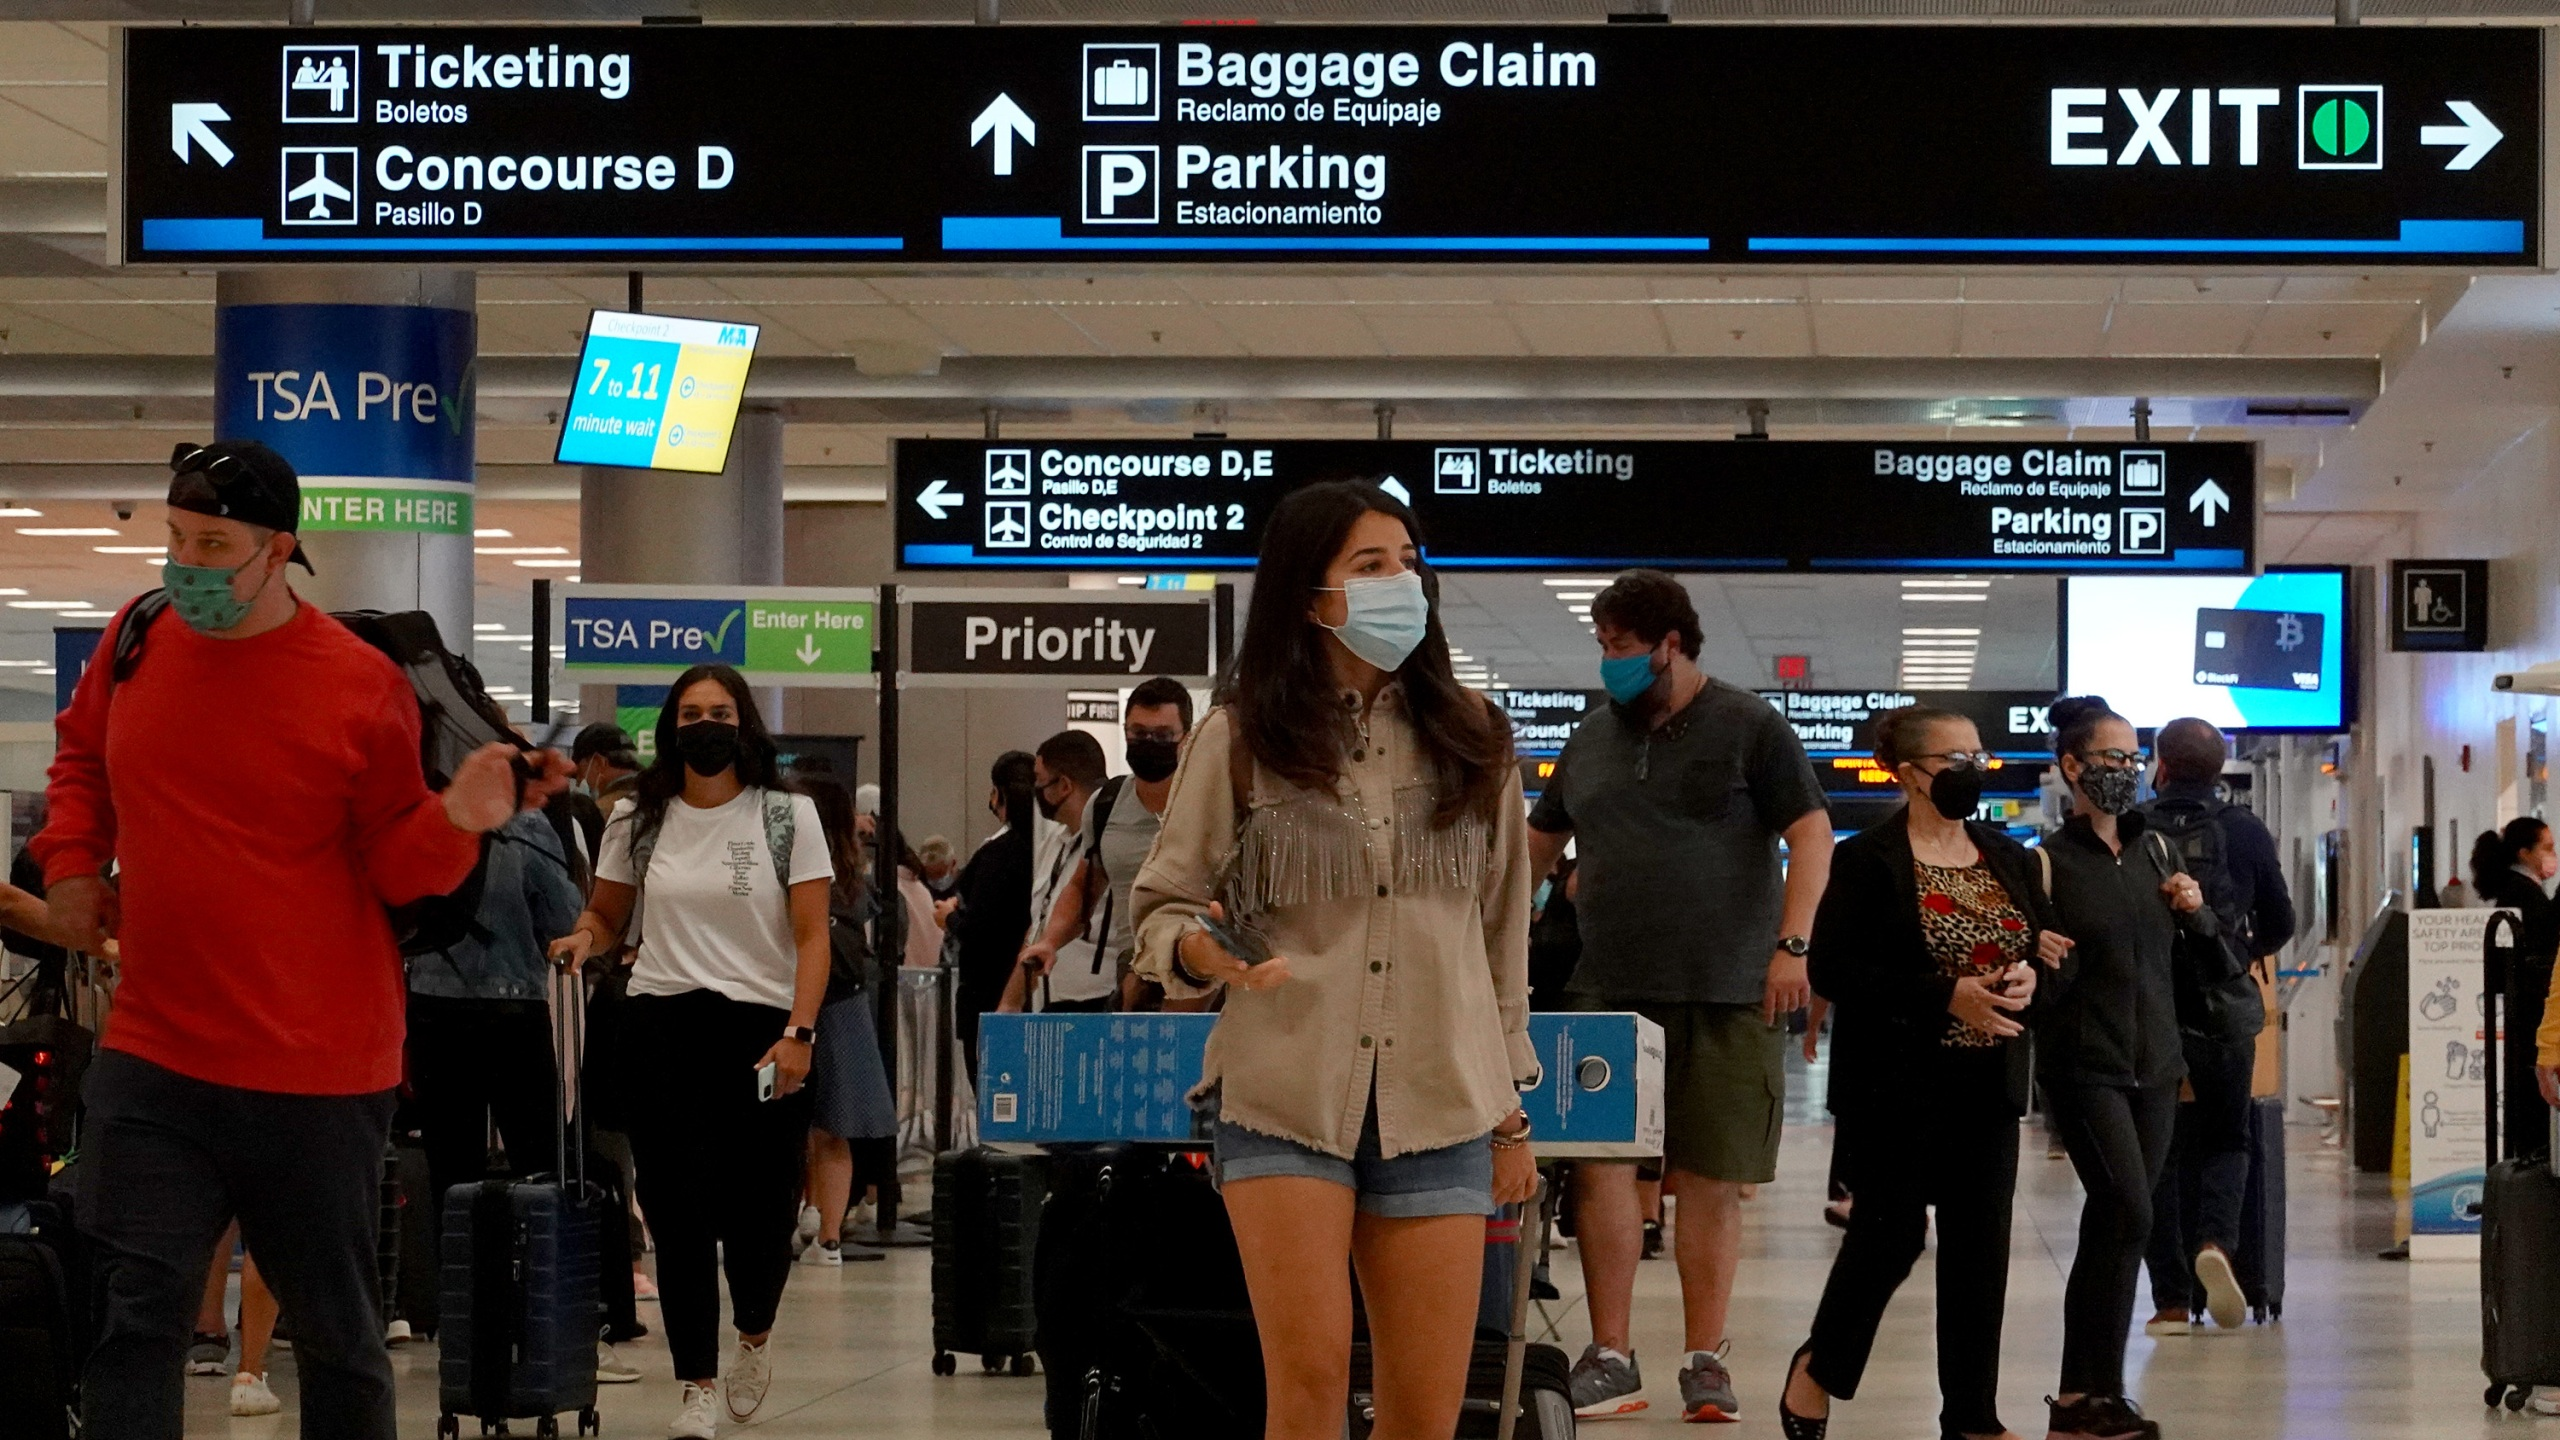 Travelers make their way through the Miami International Airport on Sept. 3, 2021 in Miami, Florida. (Joe Raedle/Getty Images)